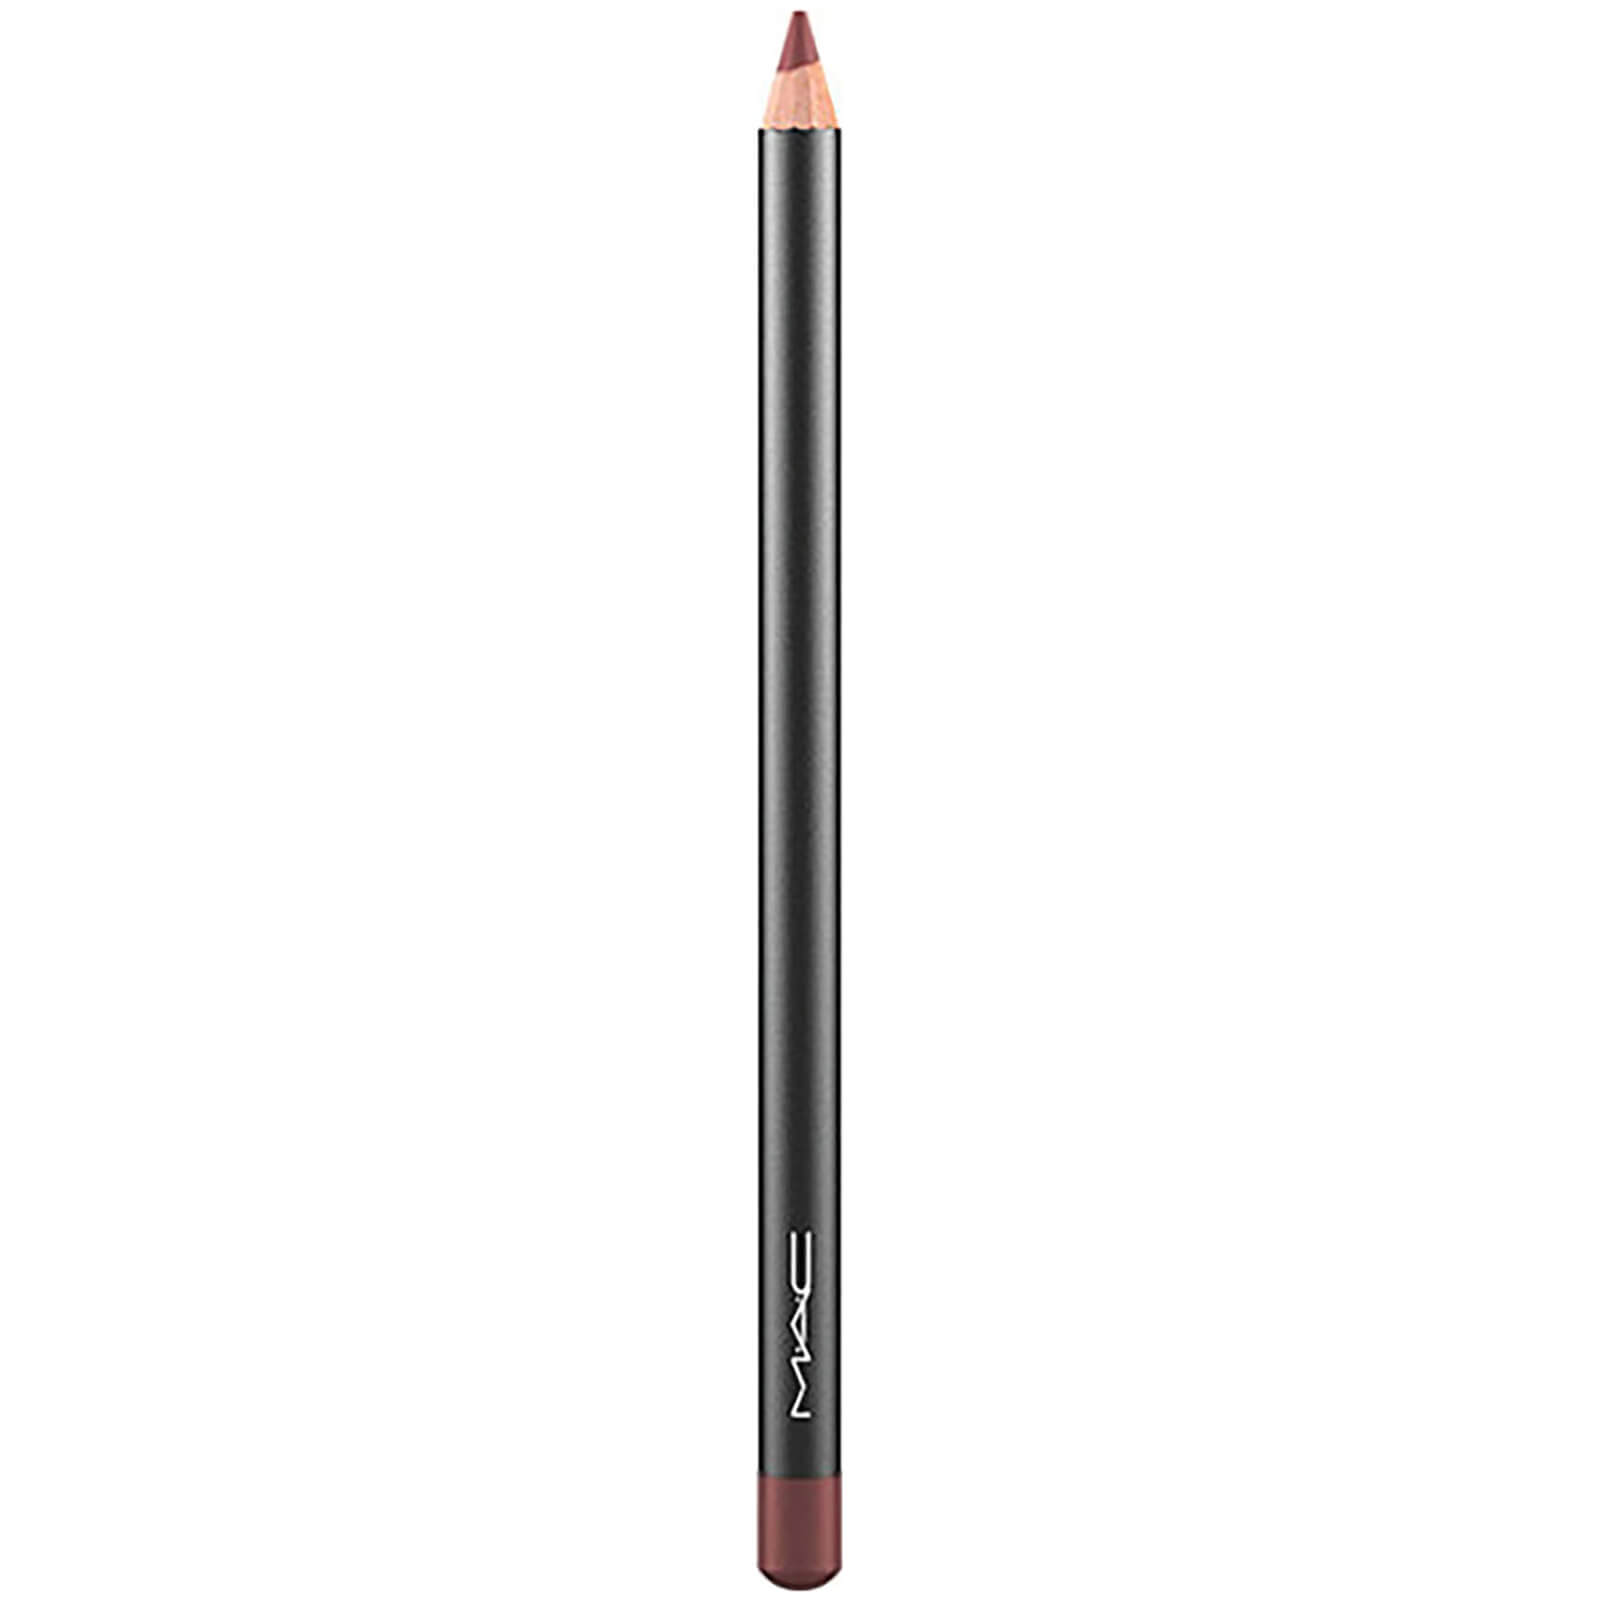 MAC Lip Pencil in Burgundy, £14